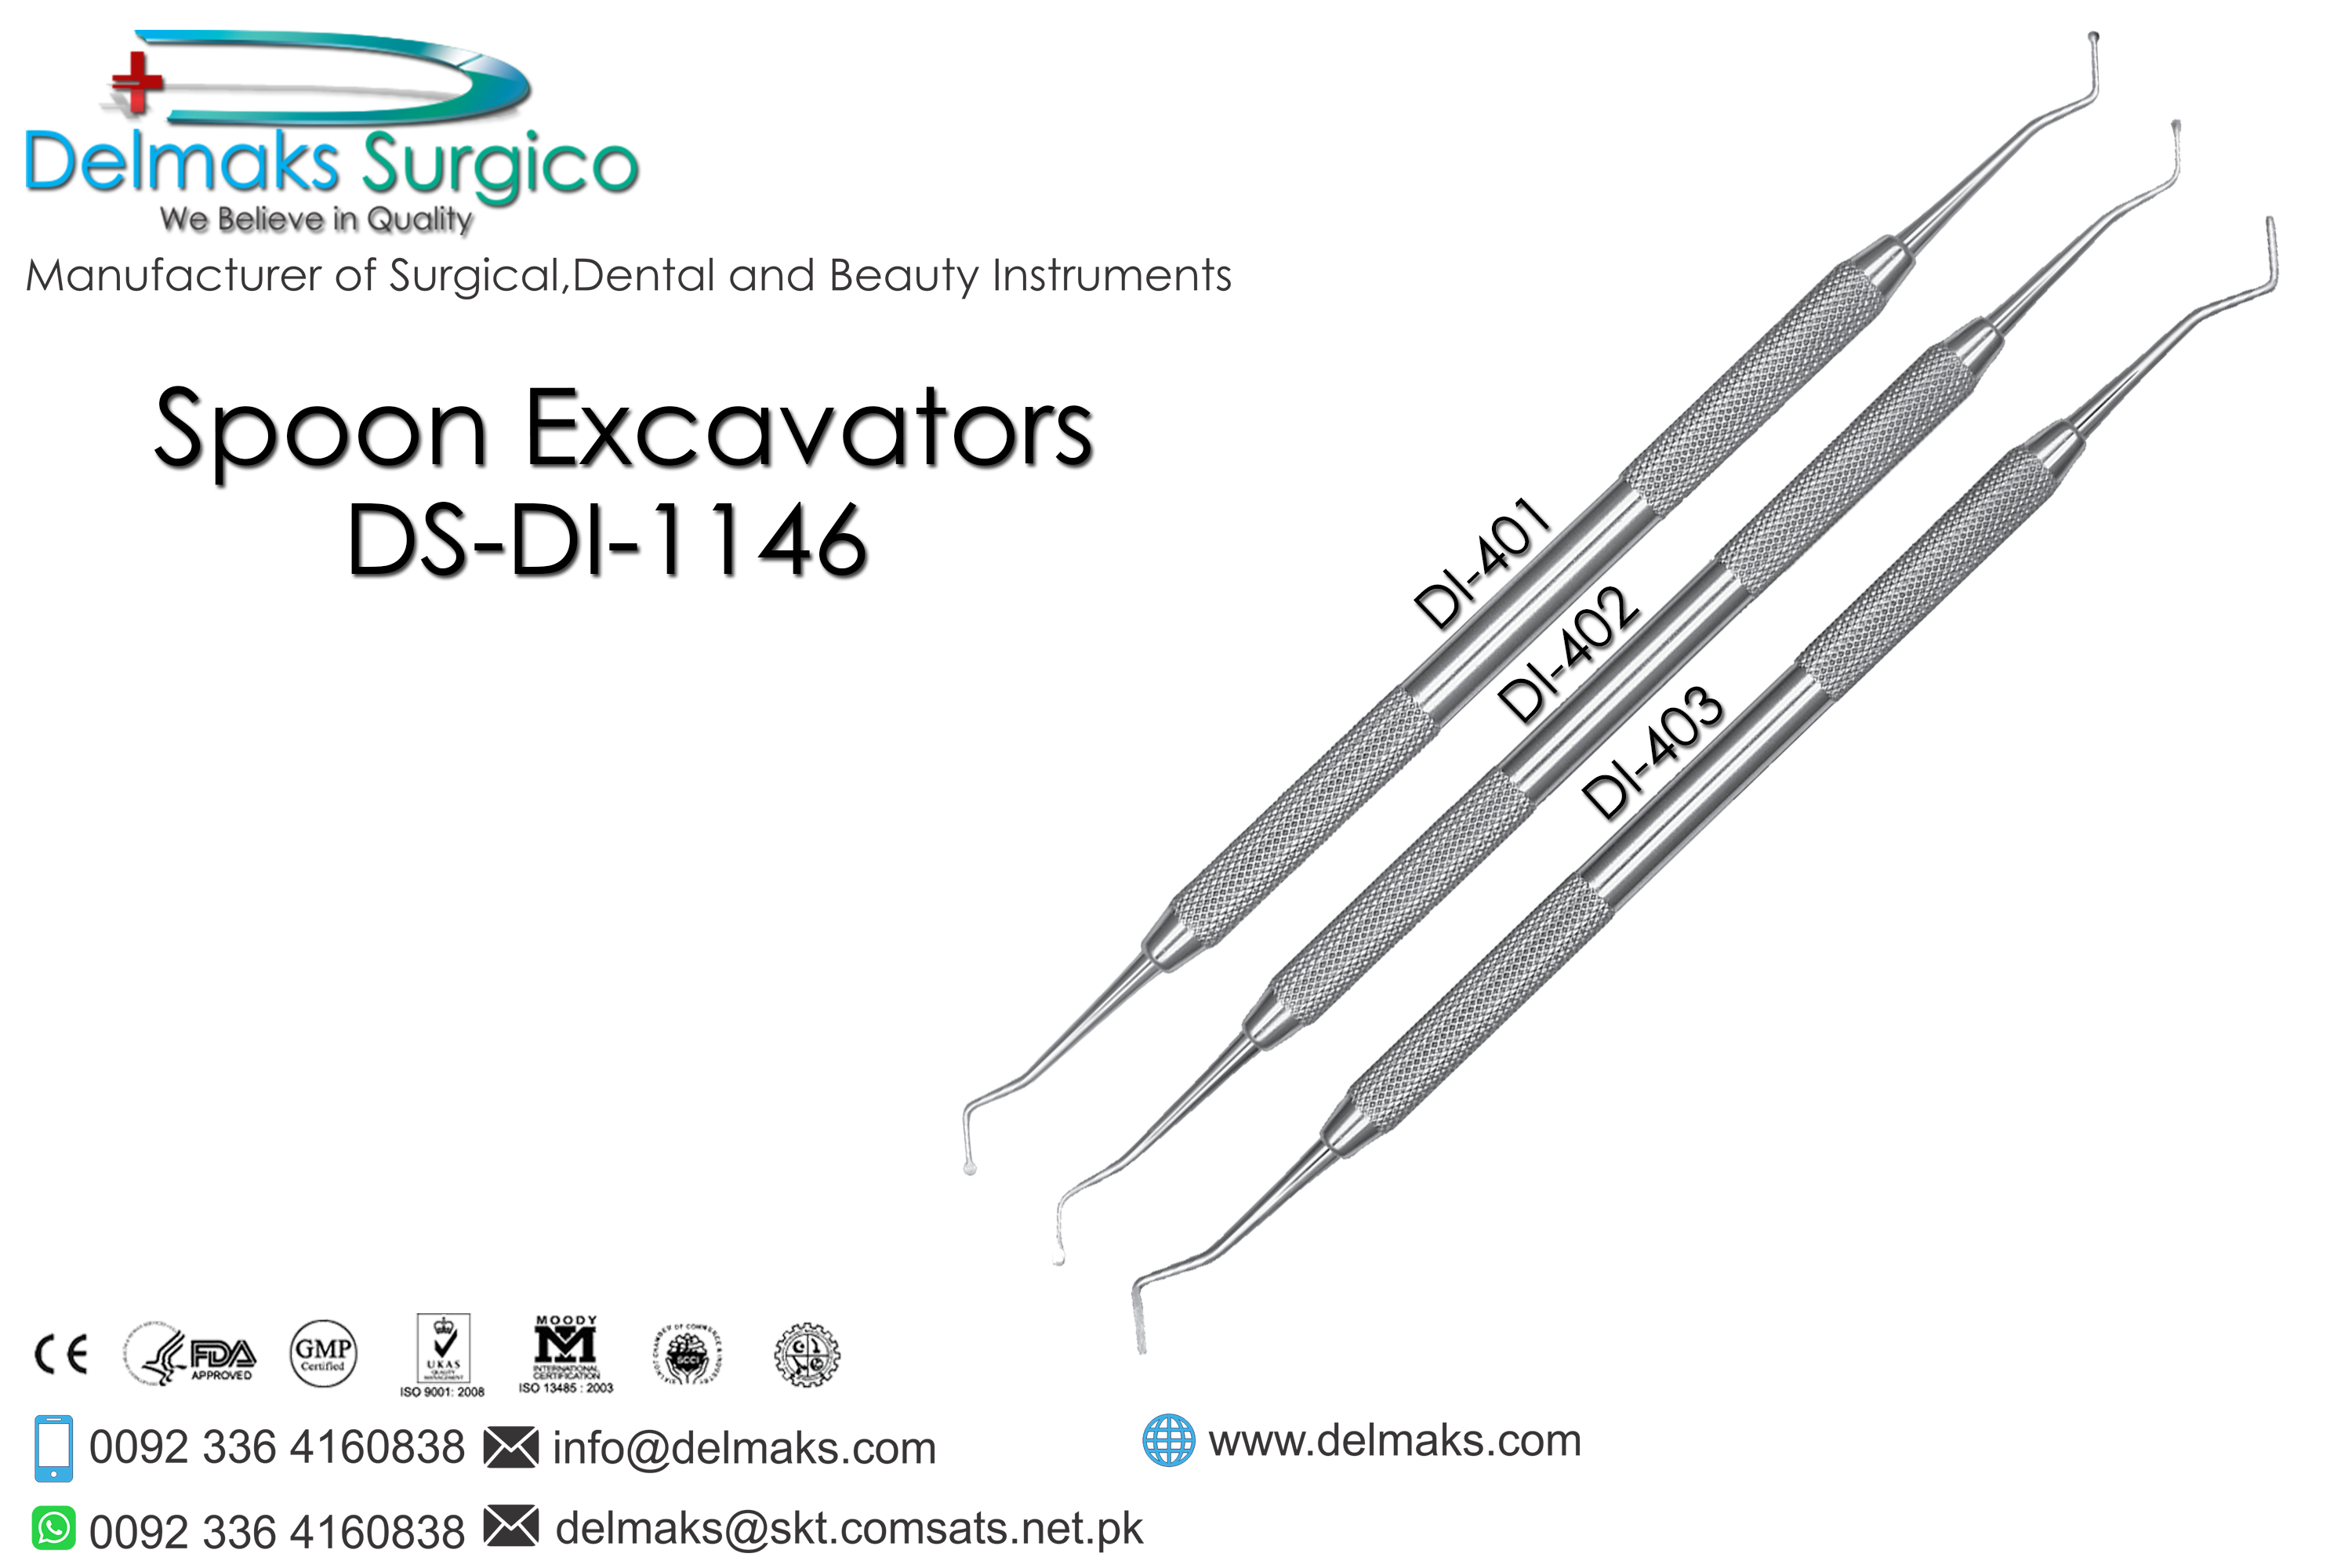 Spoon Excvators-Hand Cutting Instruments(Cavity Preperation)-Dental Instruments-Delmaks Surgico